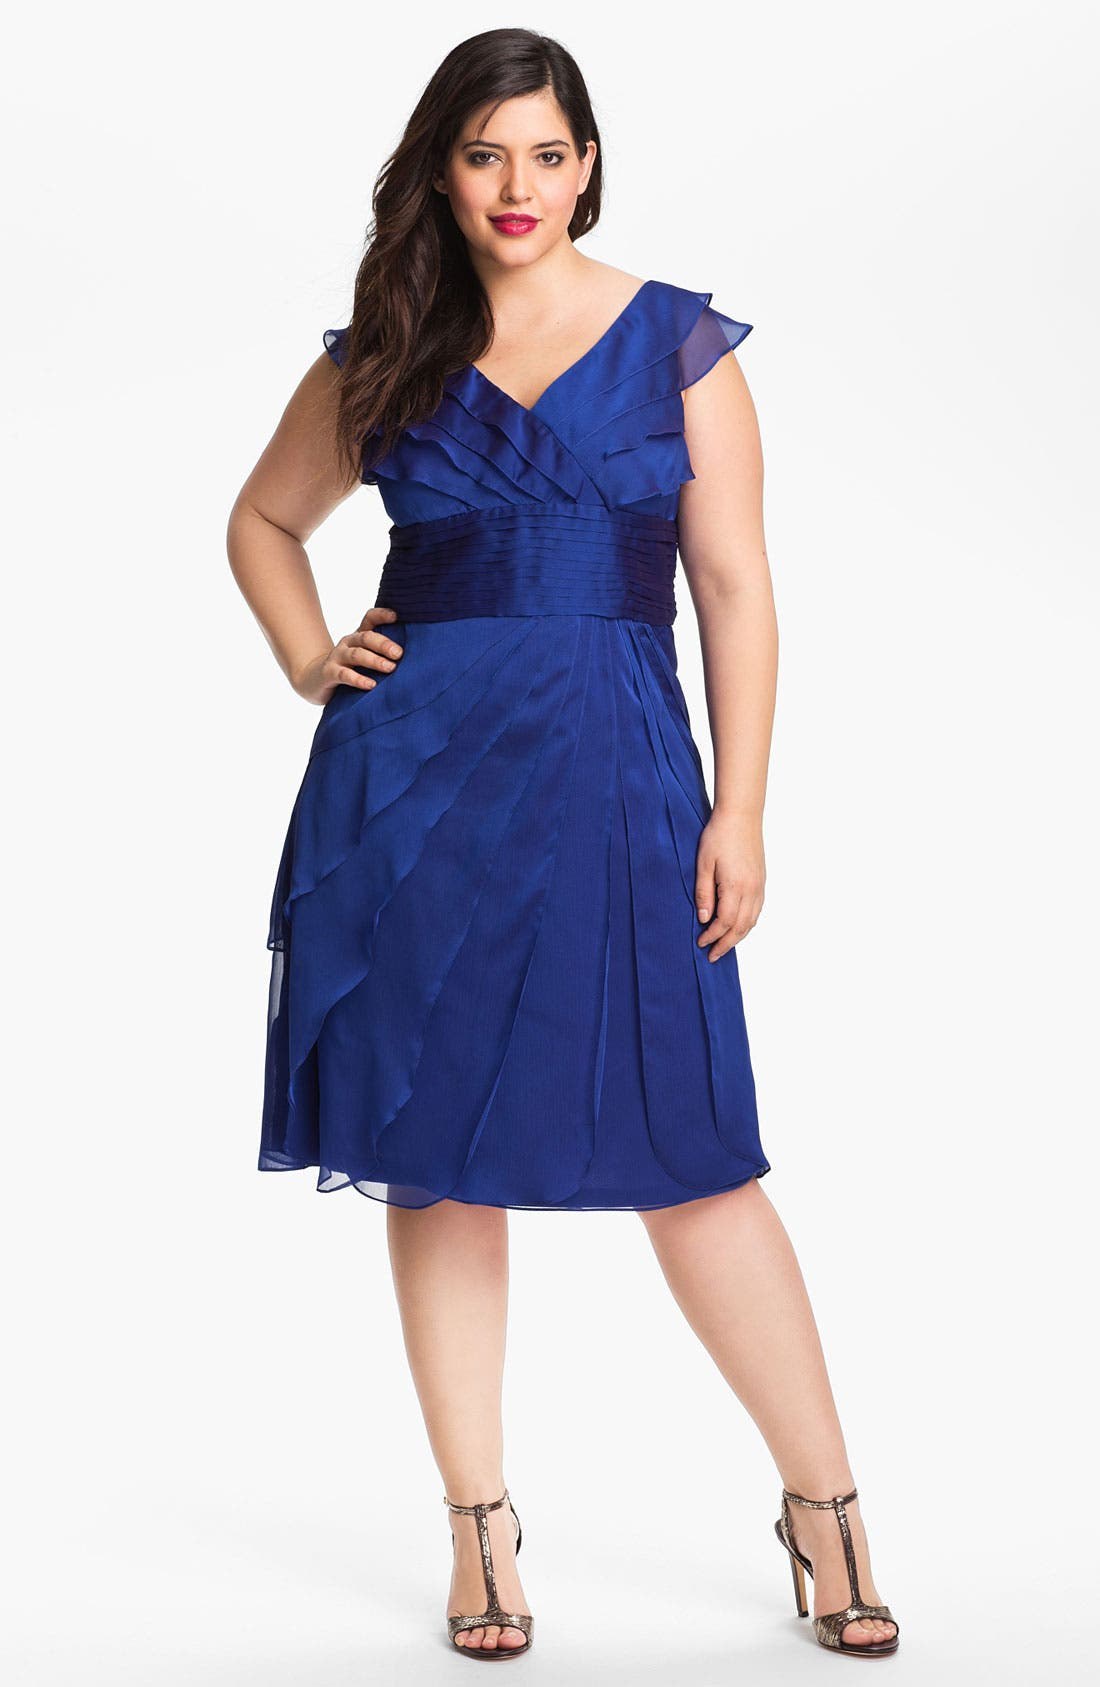 Alternate Image 1 Selected - Adrianna Papell Chiffon Petal Gown (Plus Size)